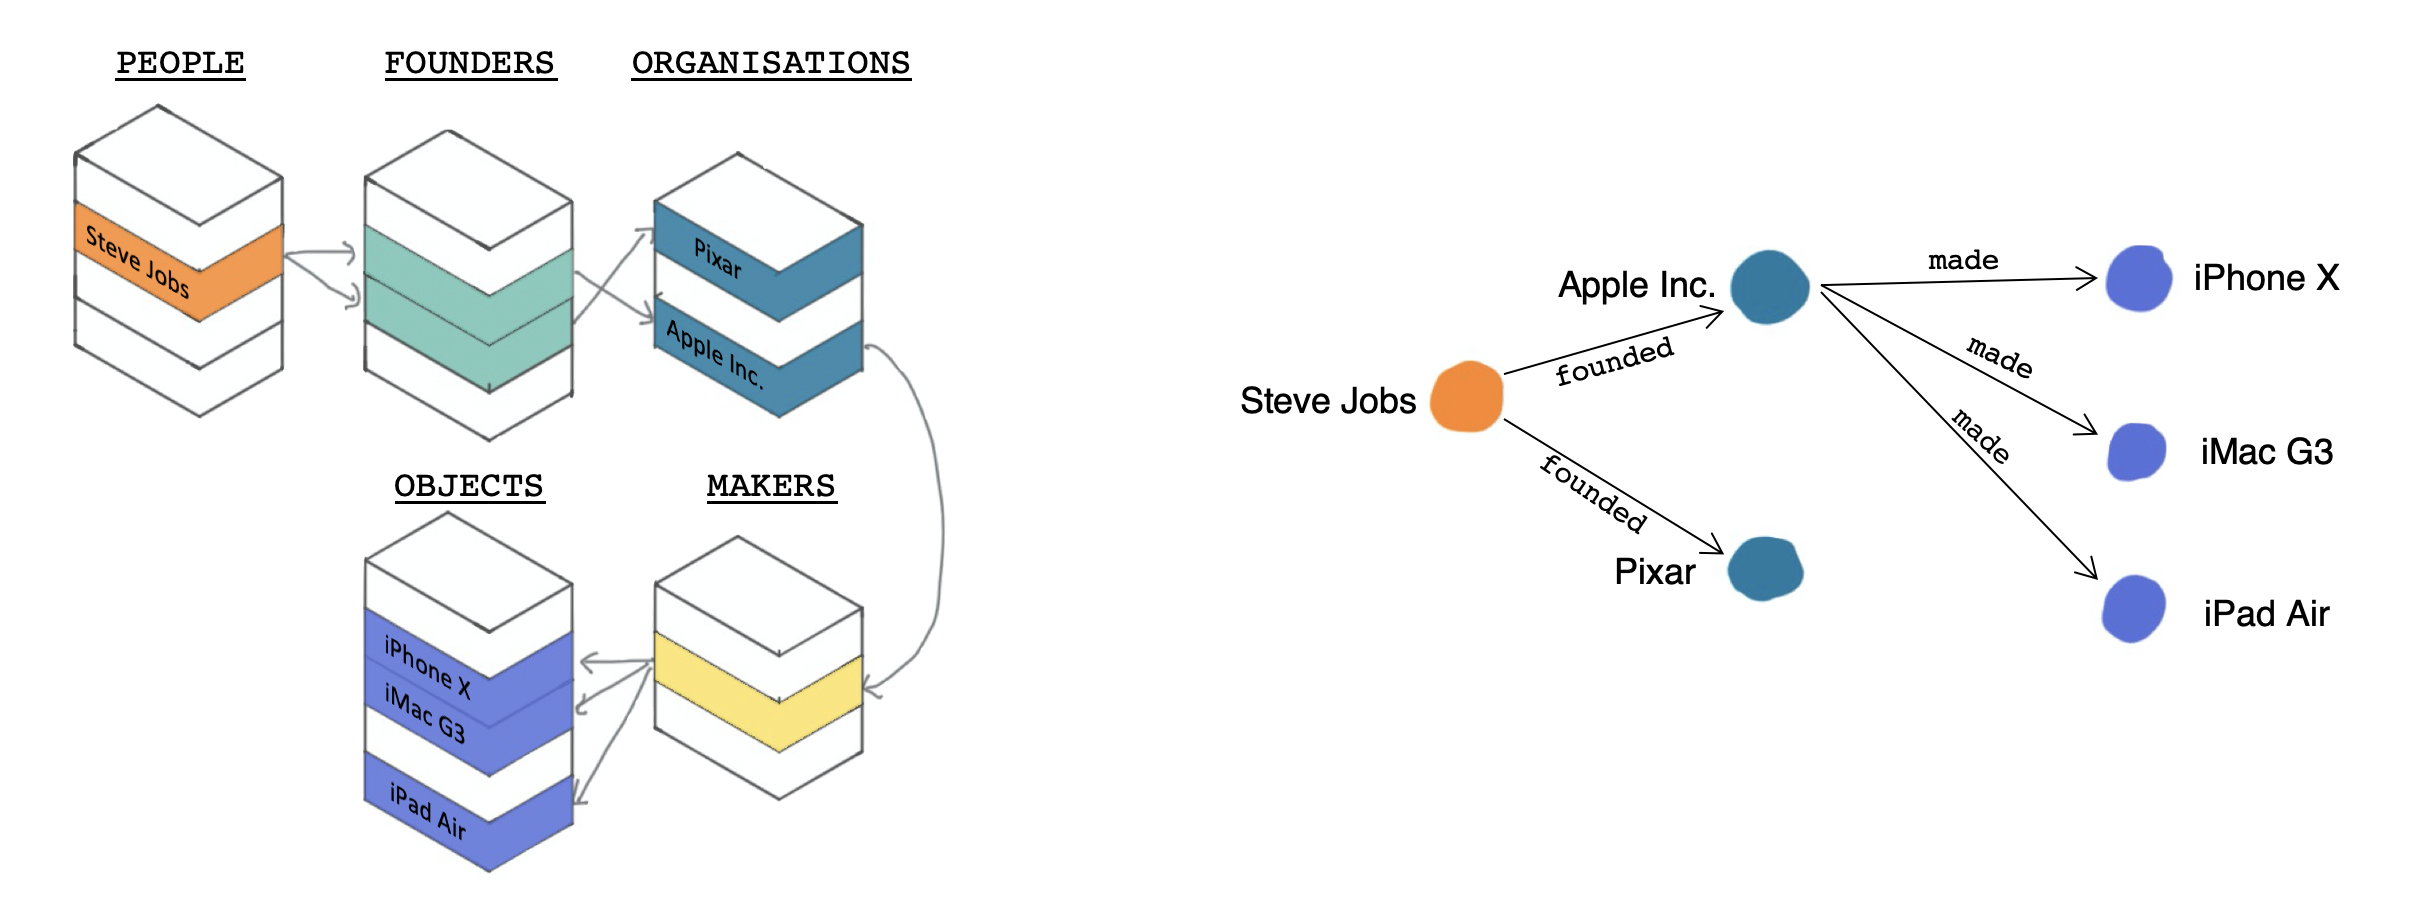 Representation of Steve Jobs' legacy in complex relational database format (left) and simpler knowledge graph format (right)